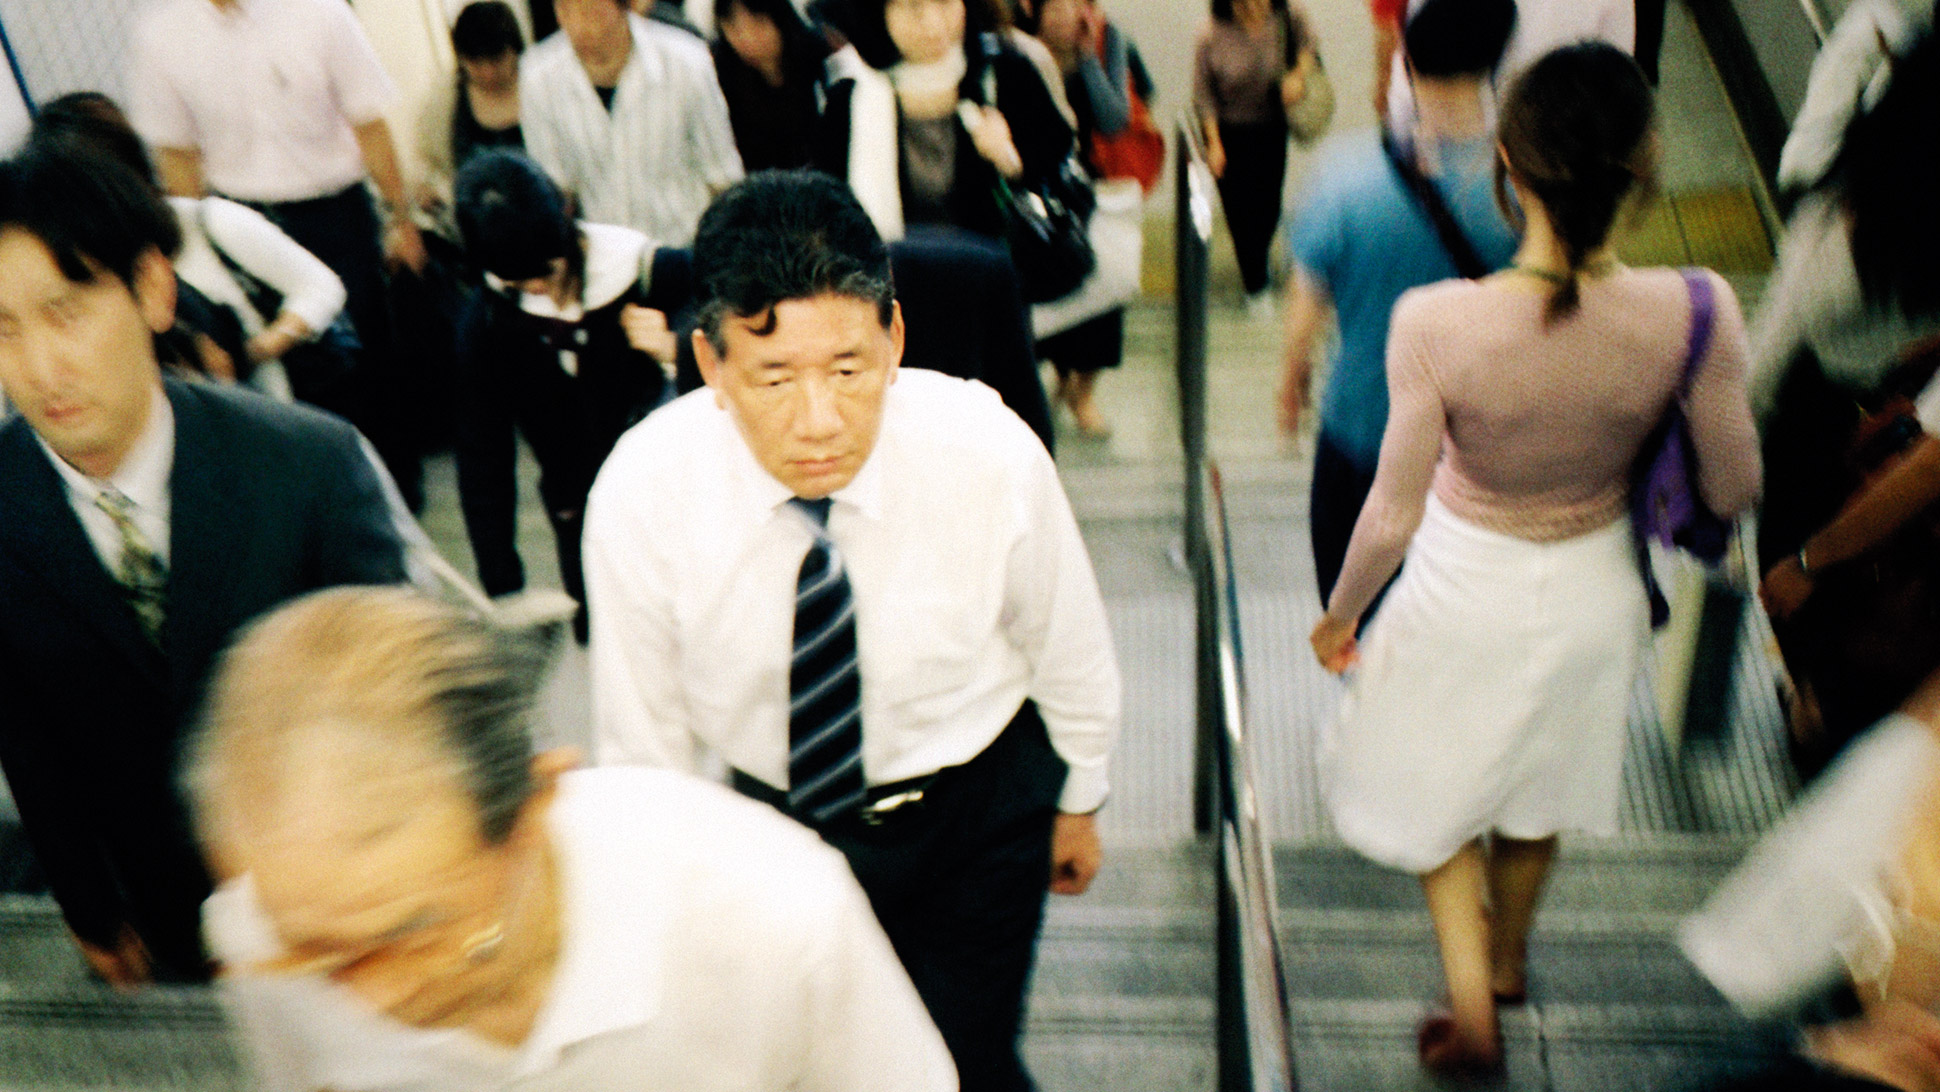 While the plight of the salaryman  may seem unattractive by Western  standards, it's an esteemed, honorable, often lifelong commitment in Japan.